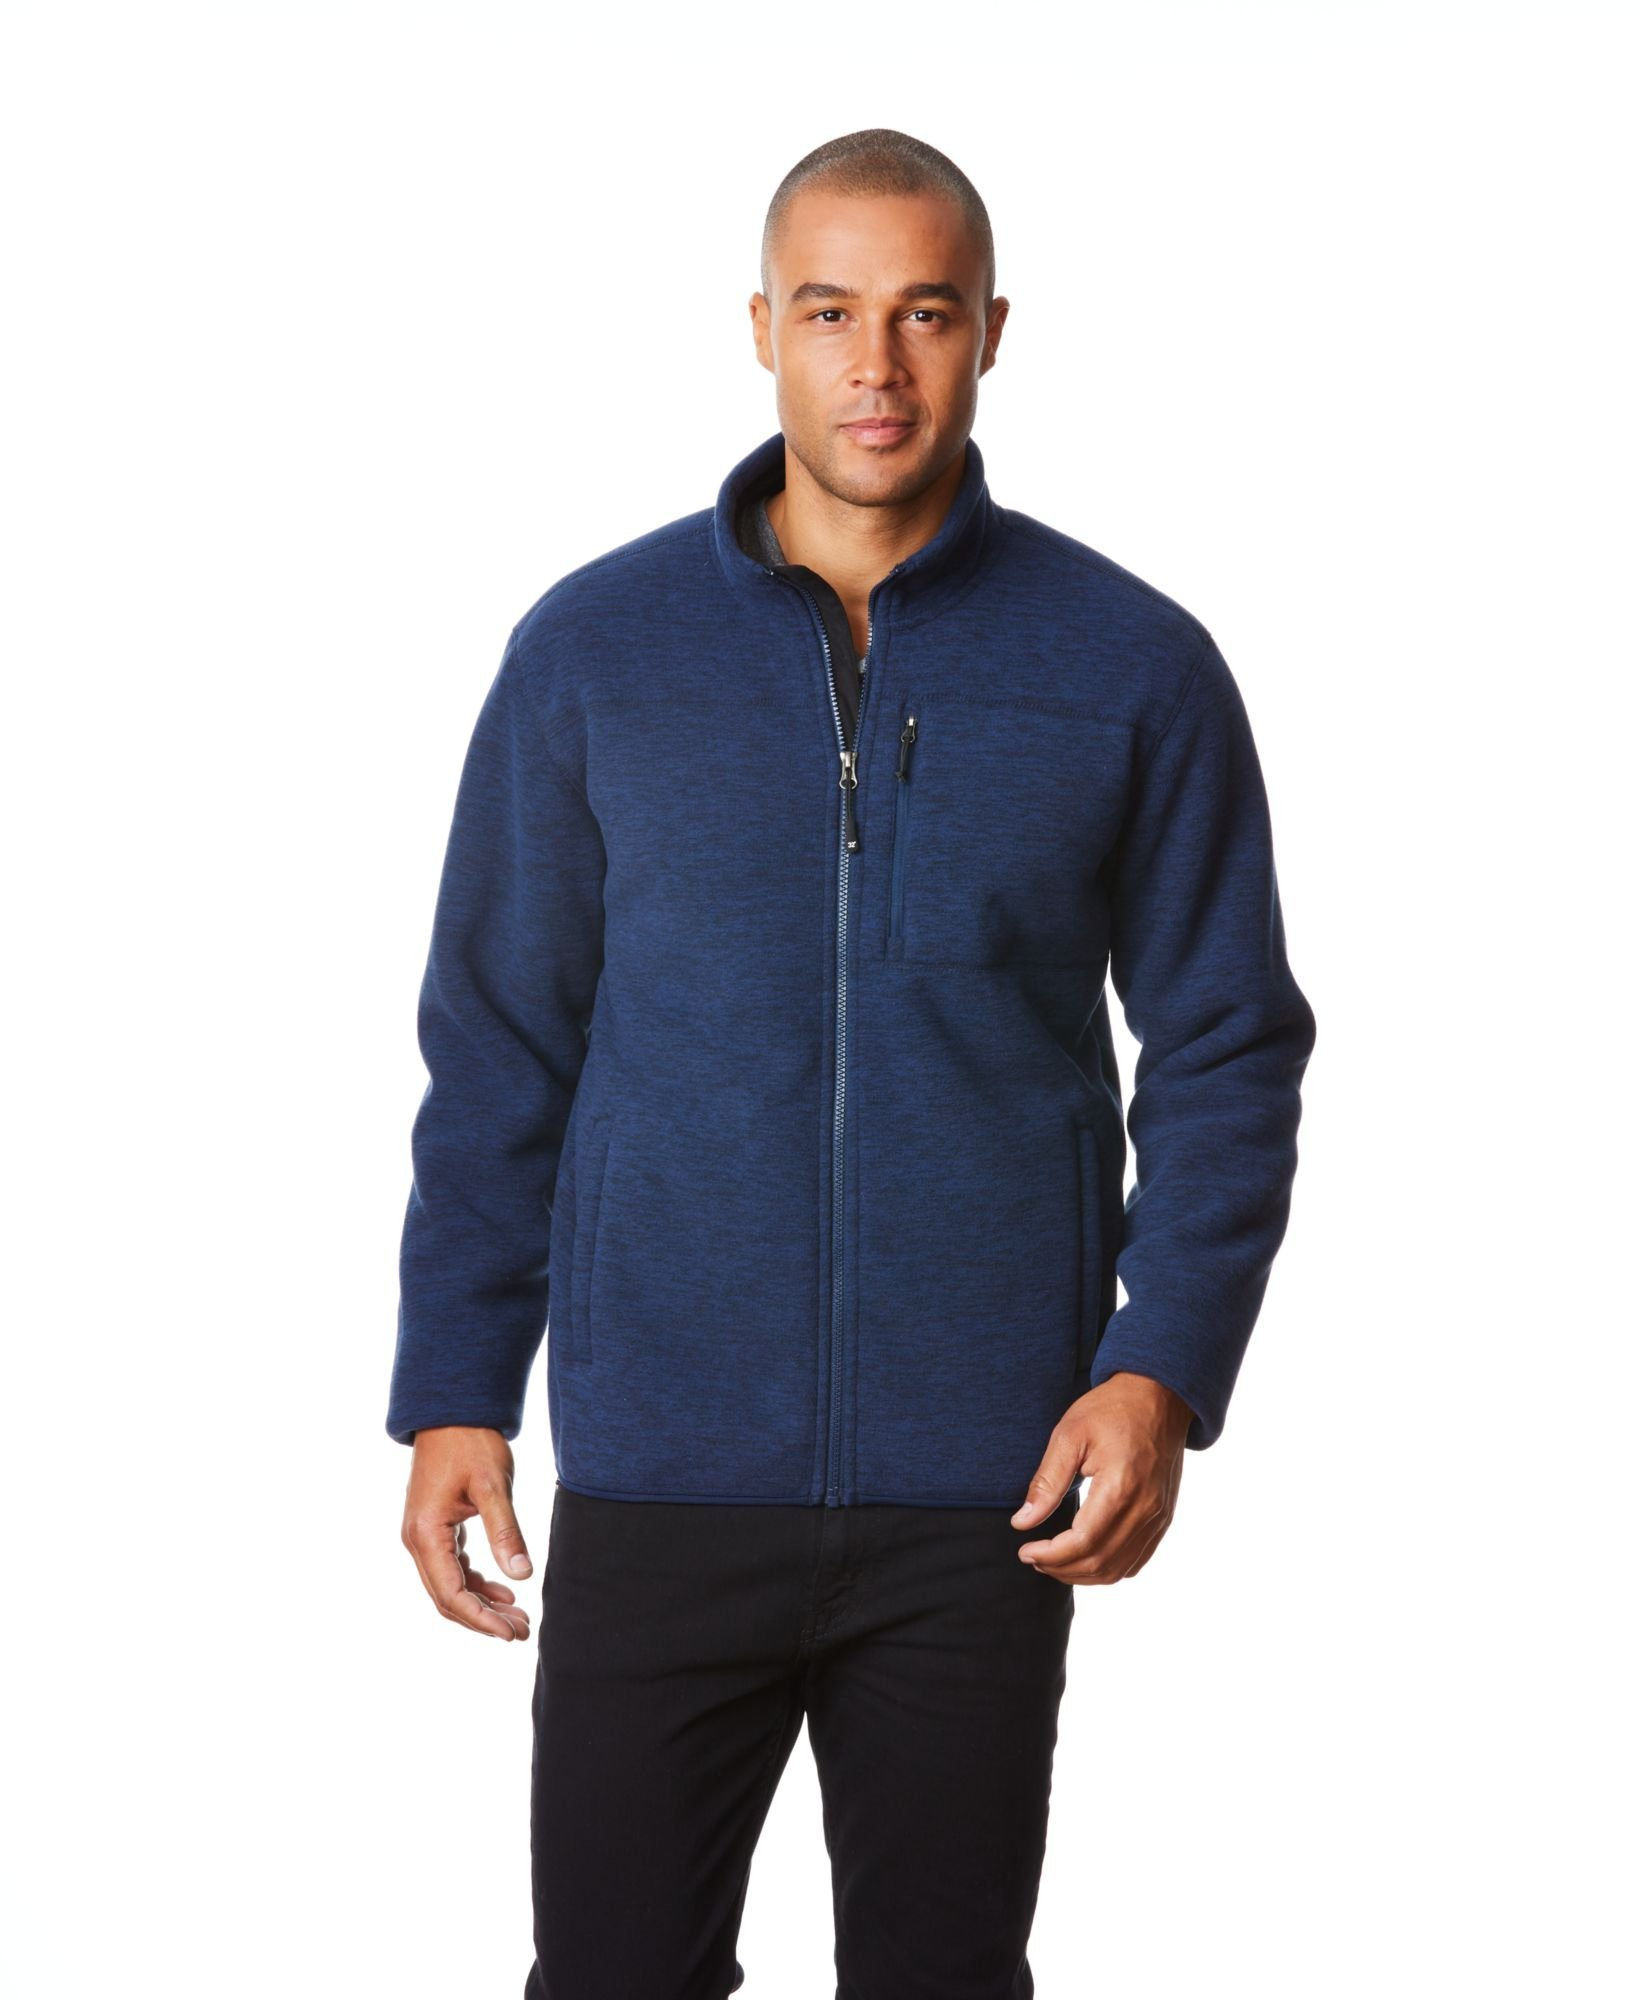 32 DEGREES Men's Fleece Sherpa Jacket, Copen Navy, M